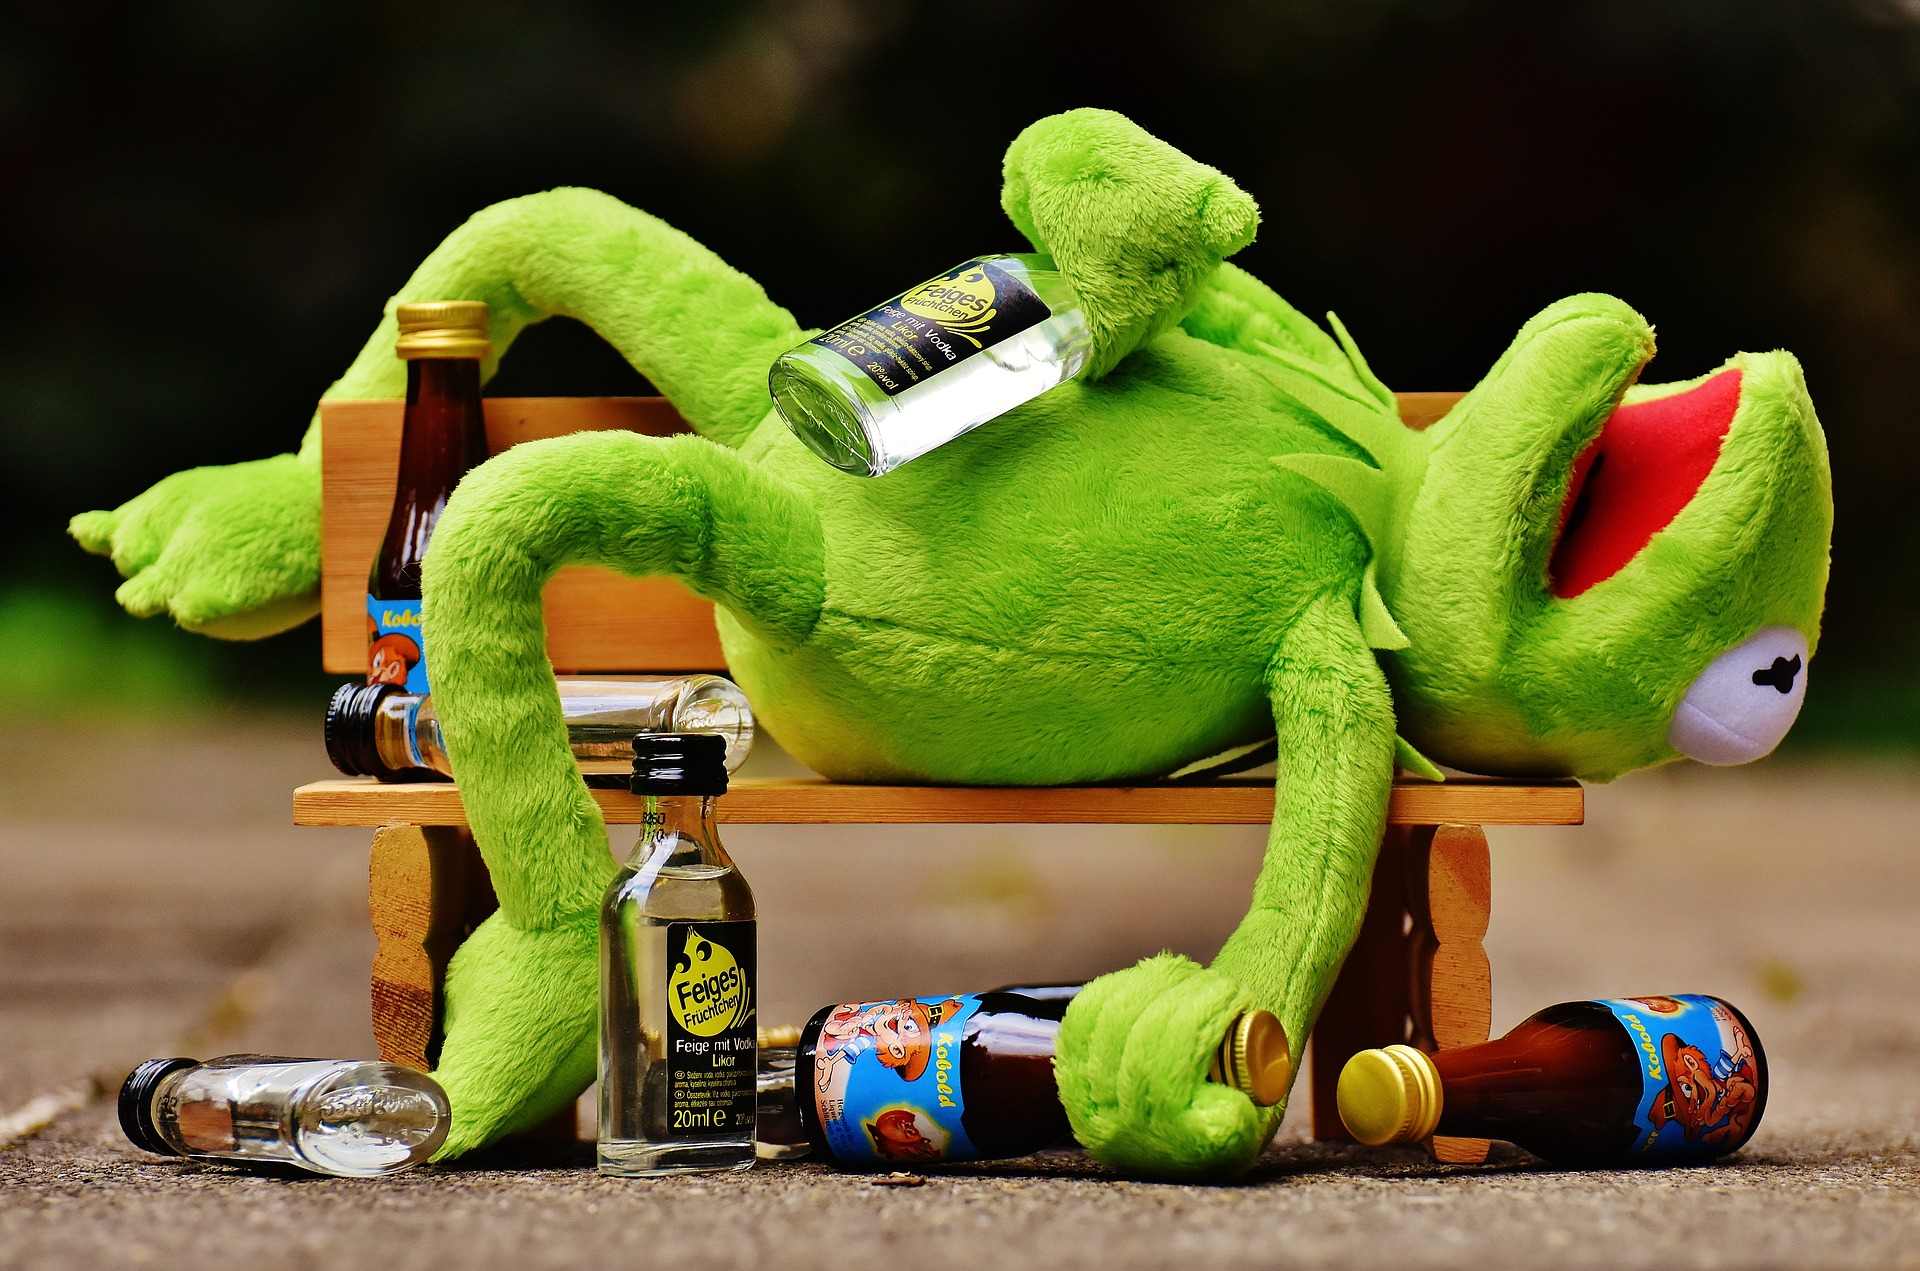 Frog wasted - save money on alcohol